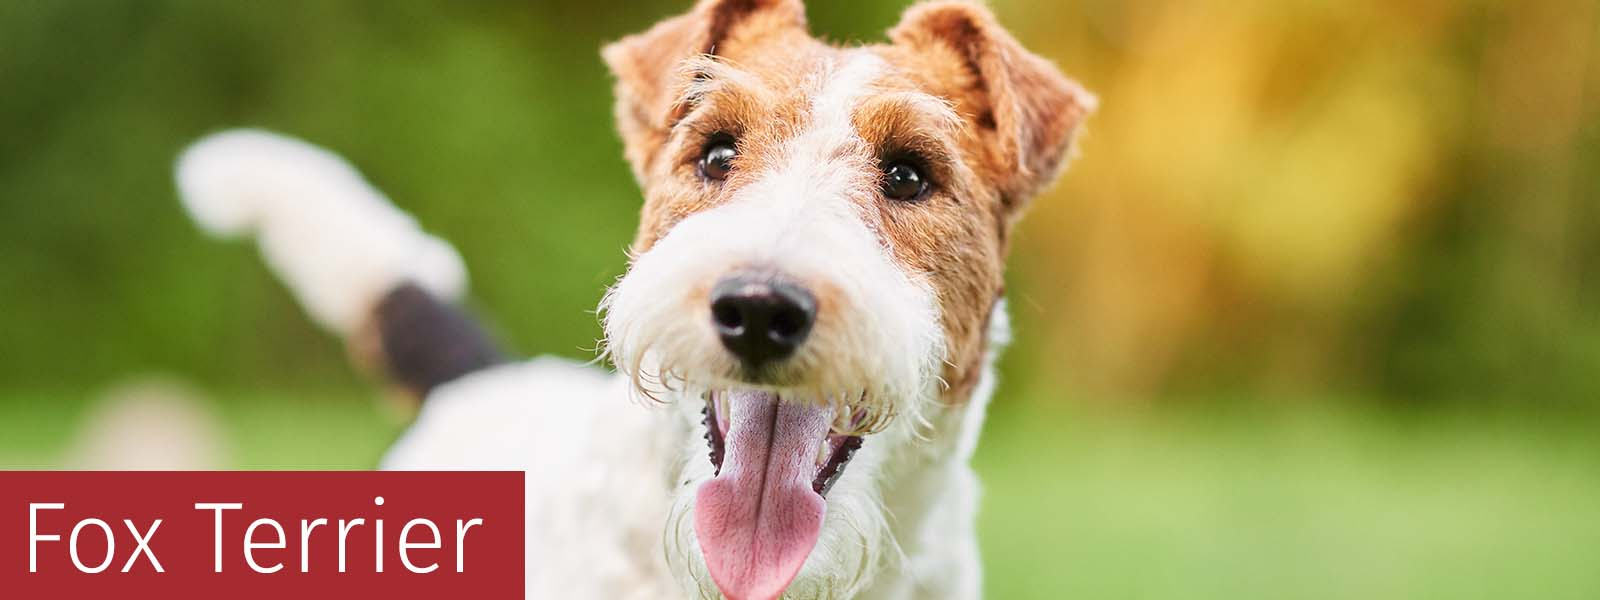 Fox Terrier Gifts